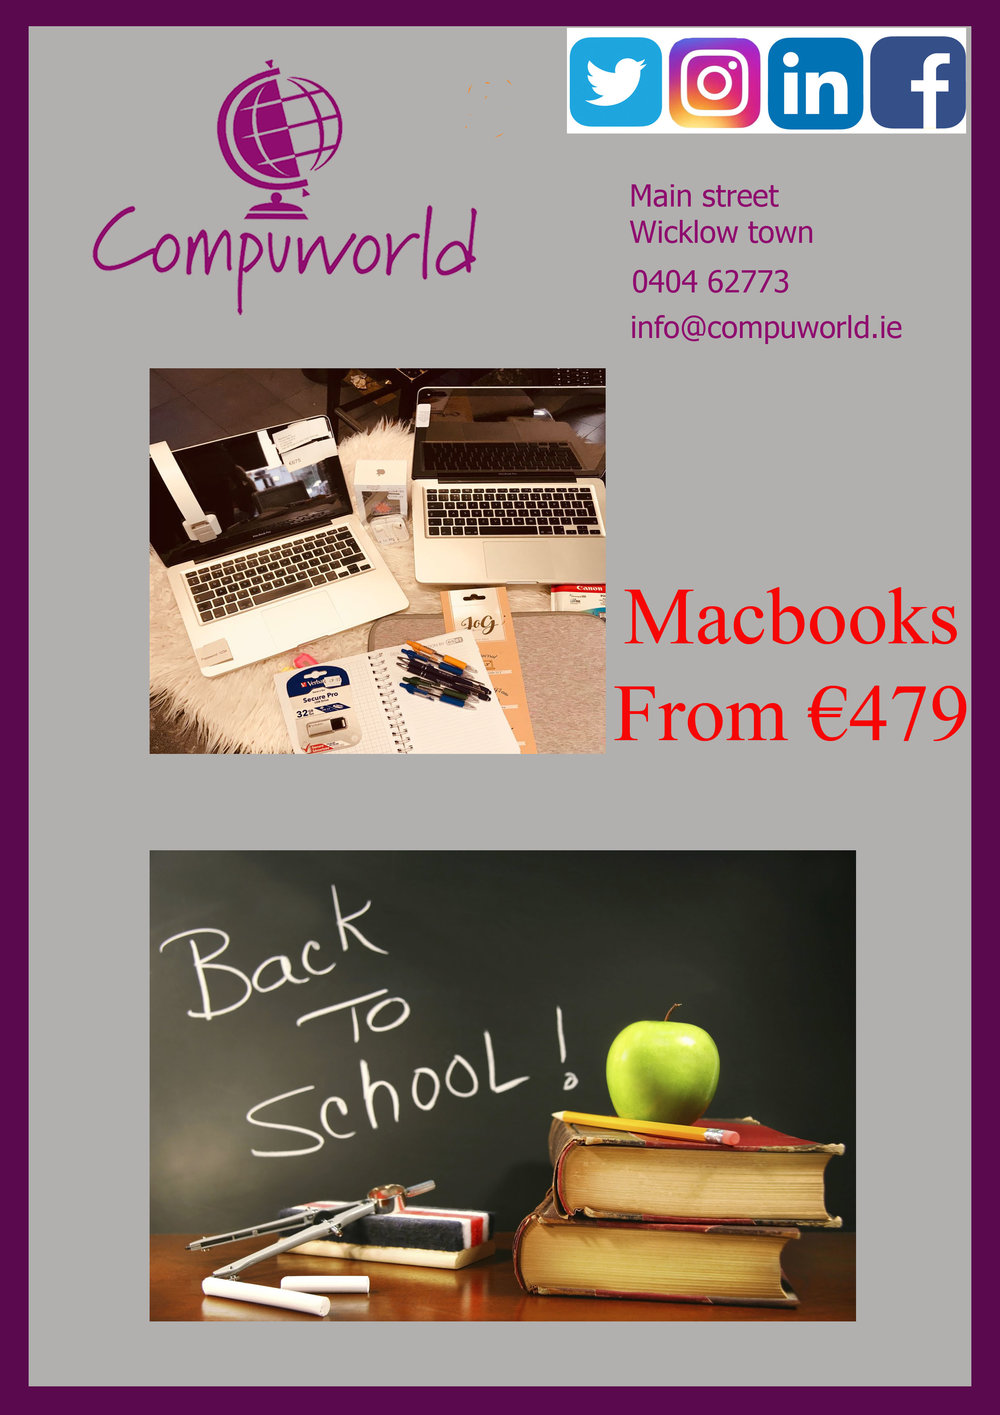 back to school Macbook Offer.jpg